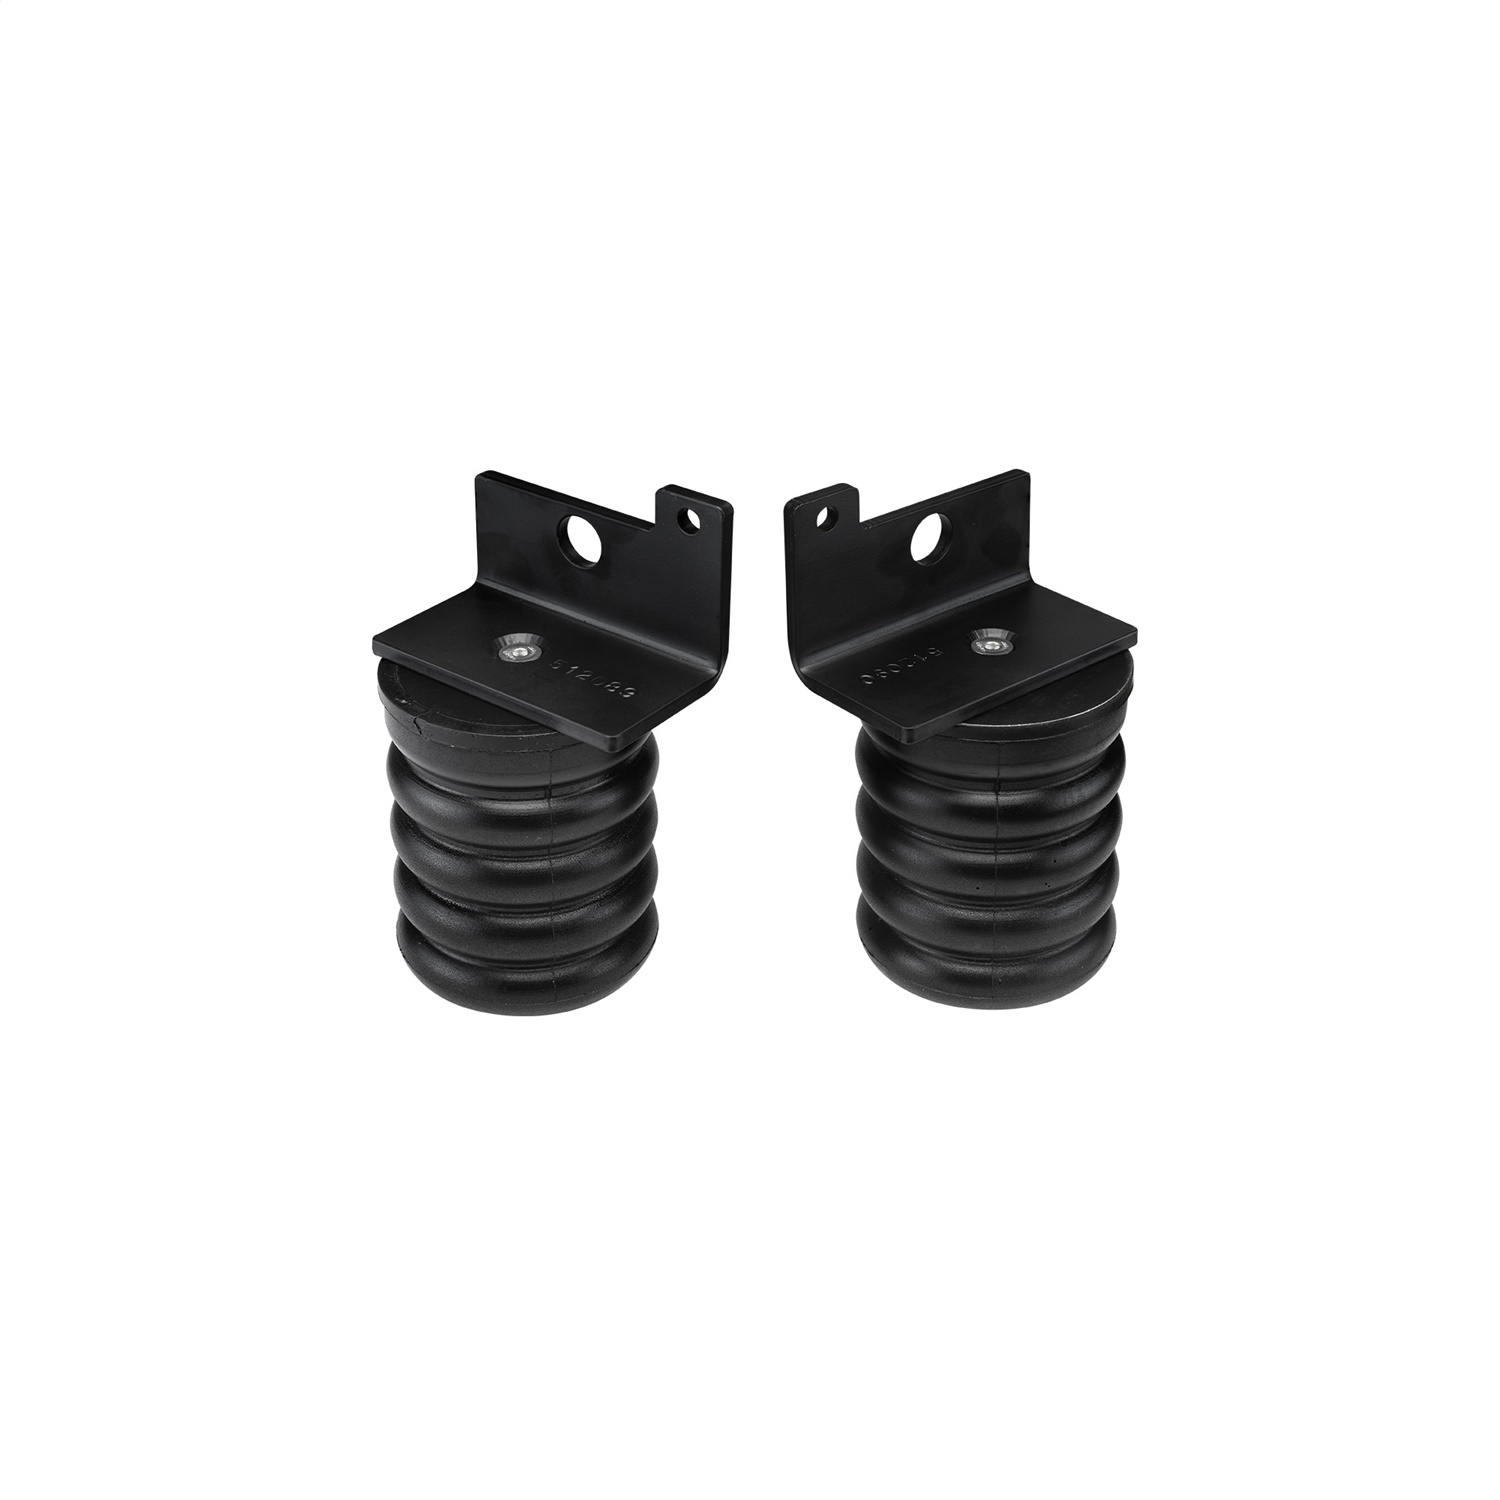 SumoSprings, Solo Kits Are Replacements To Factory Bump Stops, Capacity 1500 lbs. At 50 Percent Compression, Do Not Exceed GVWR